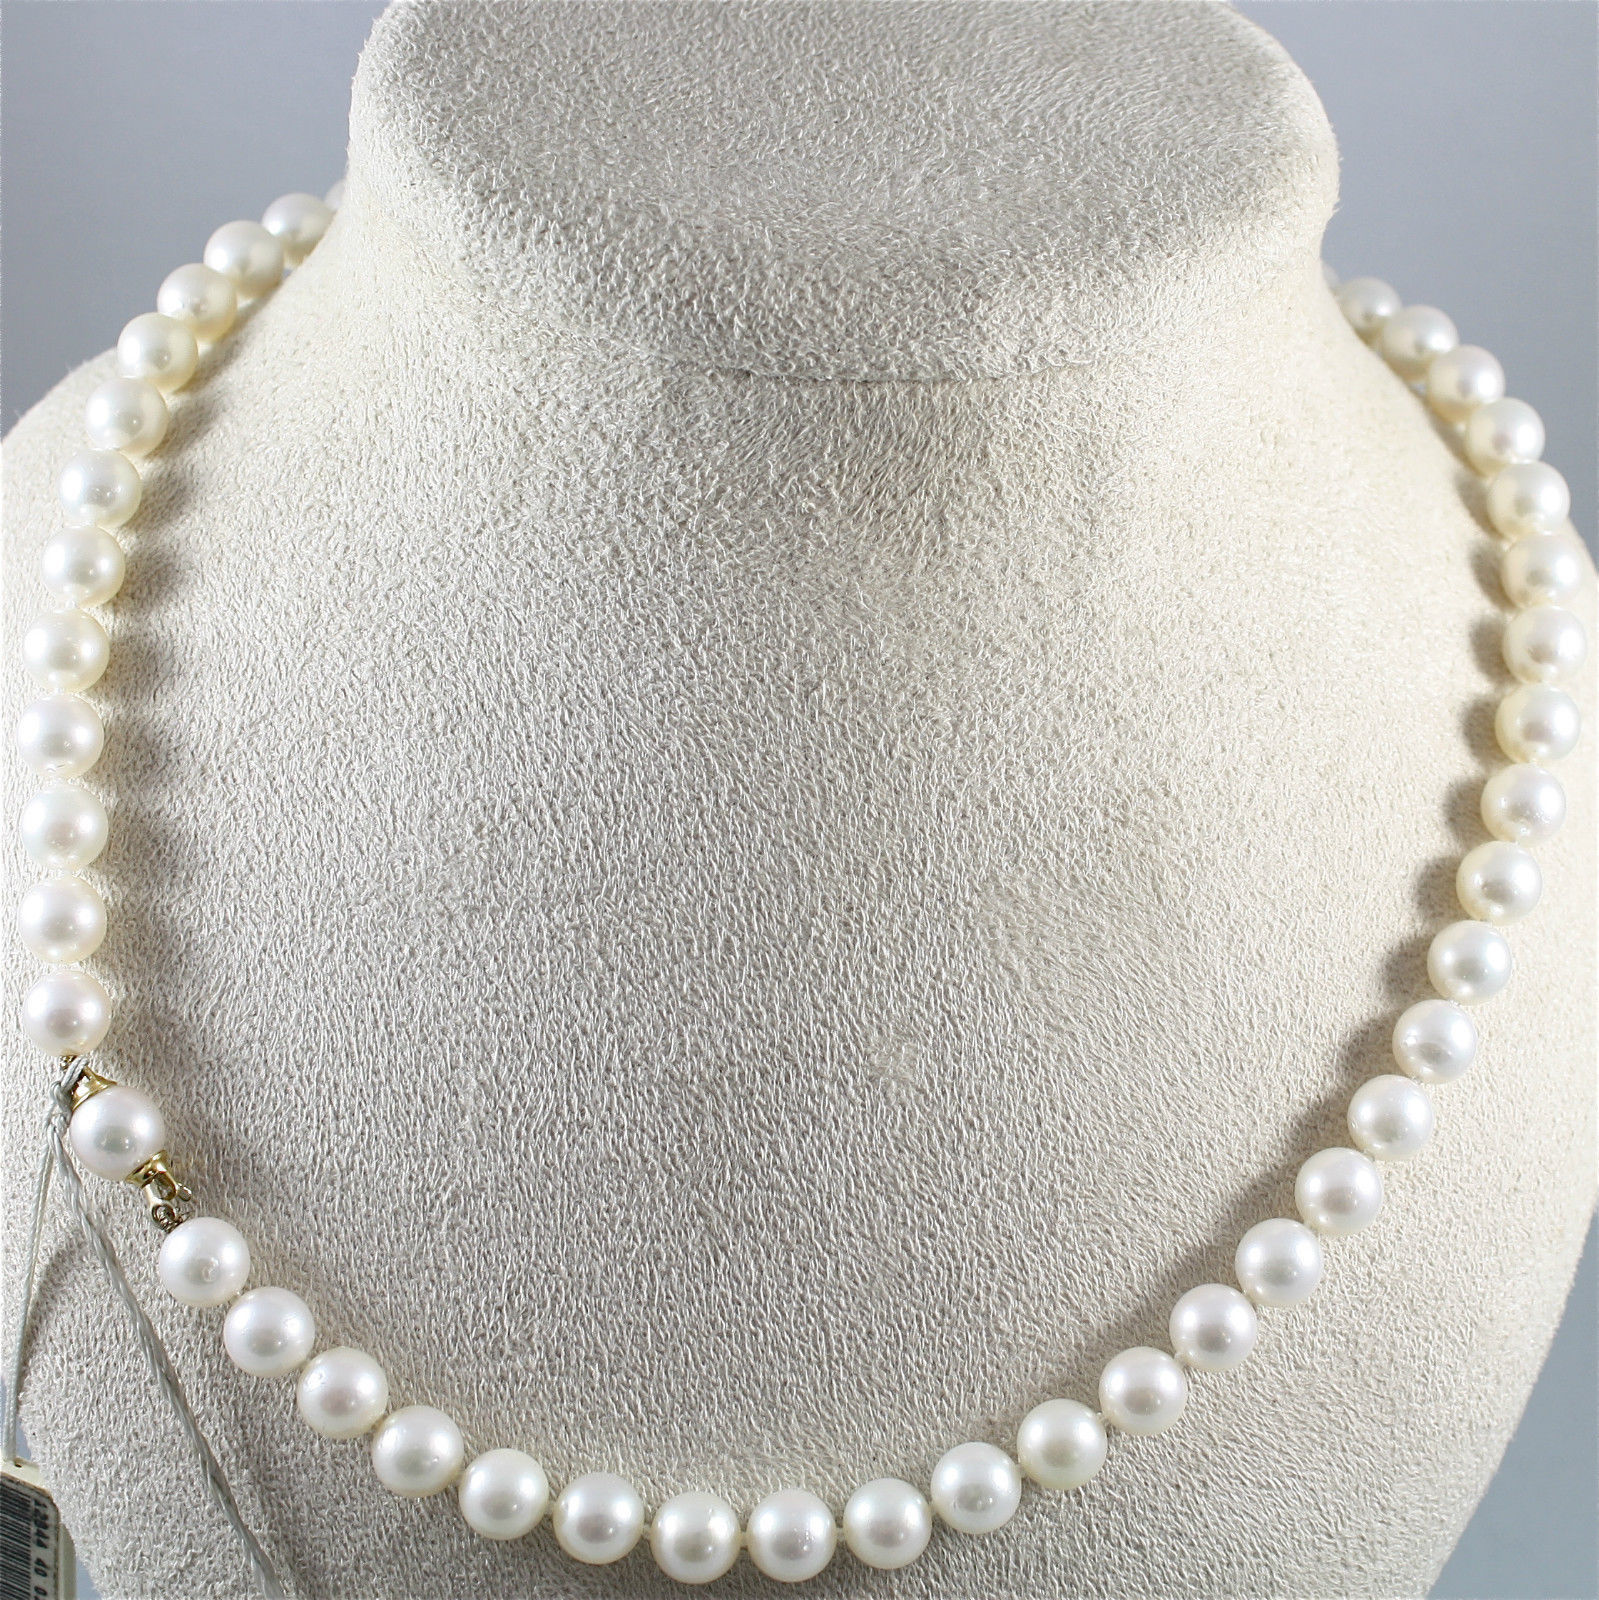 NECKLACE WHITE SALTWATER PEARLS DIAMETER .31 In 18K YELLOW GOLD CLOSURE BY NIMEI